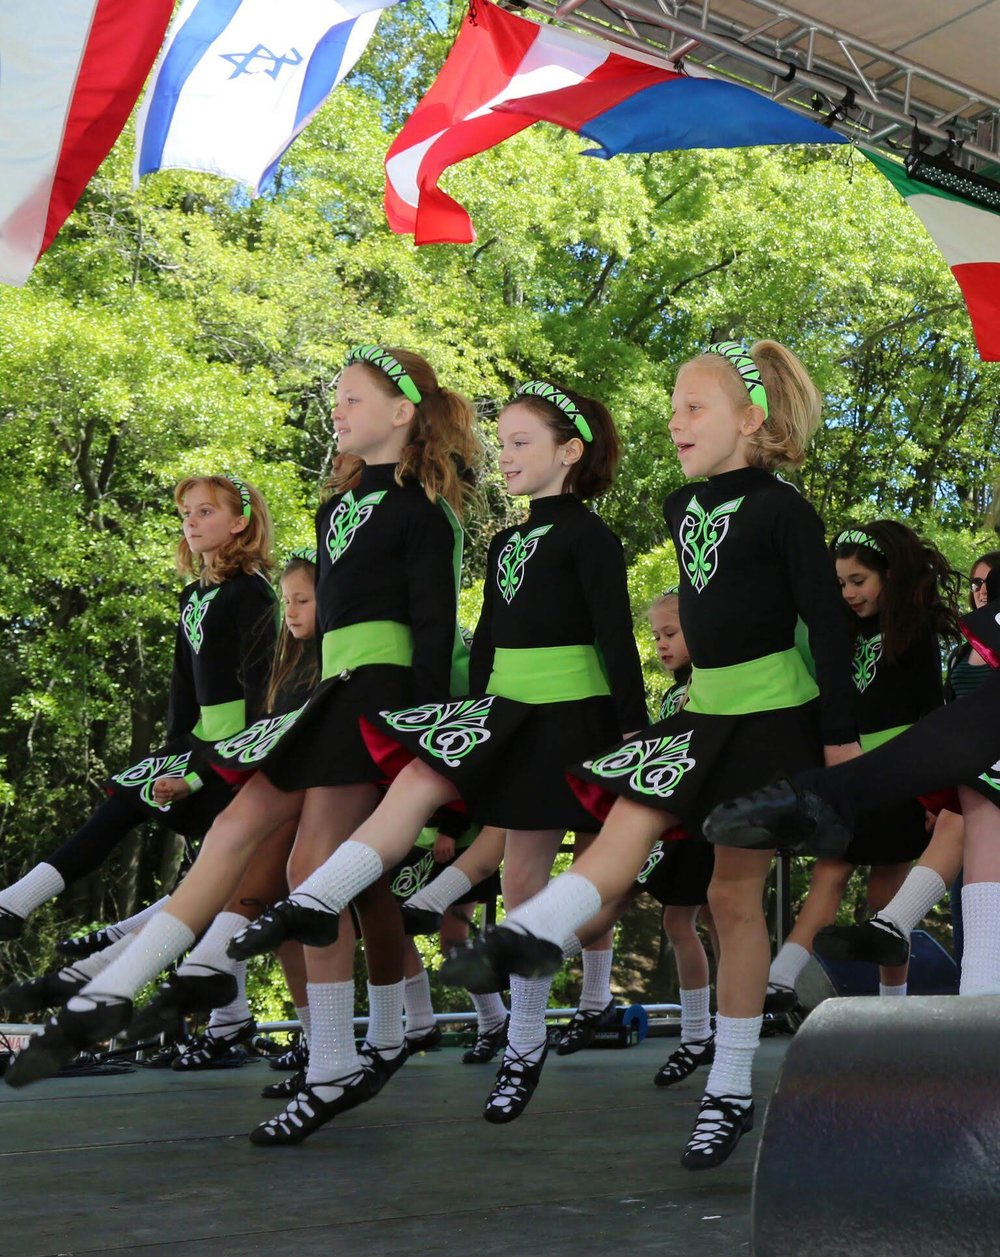 Our Beginner Skirts, Embroidered Leotards, Capes & Headbands!